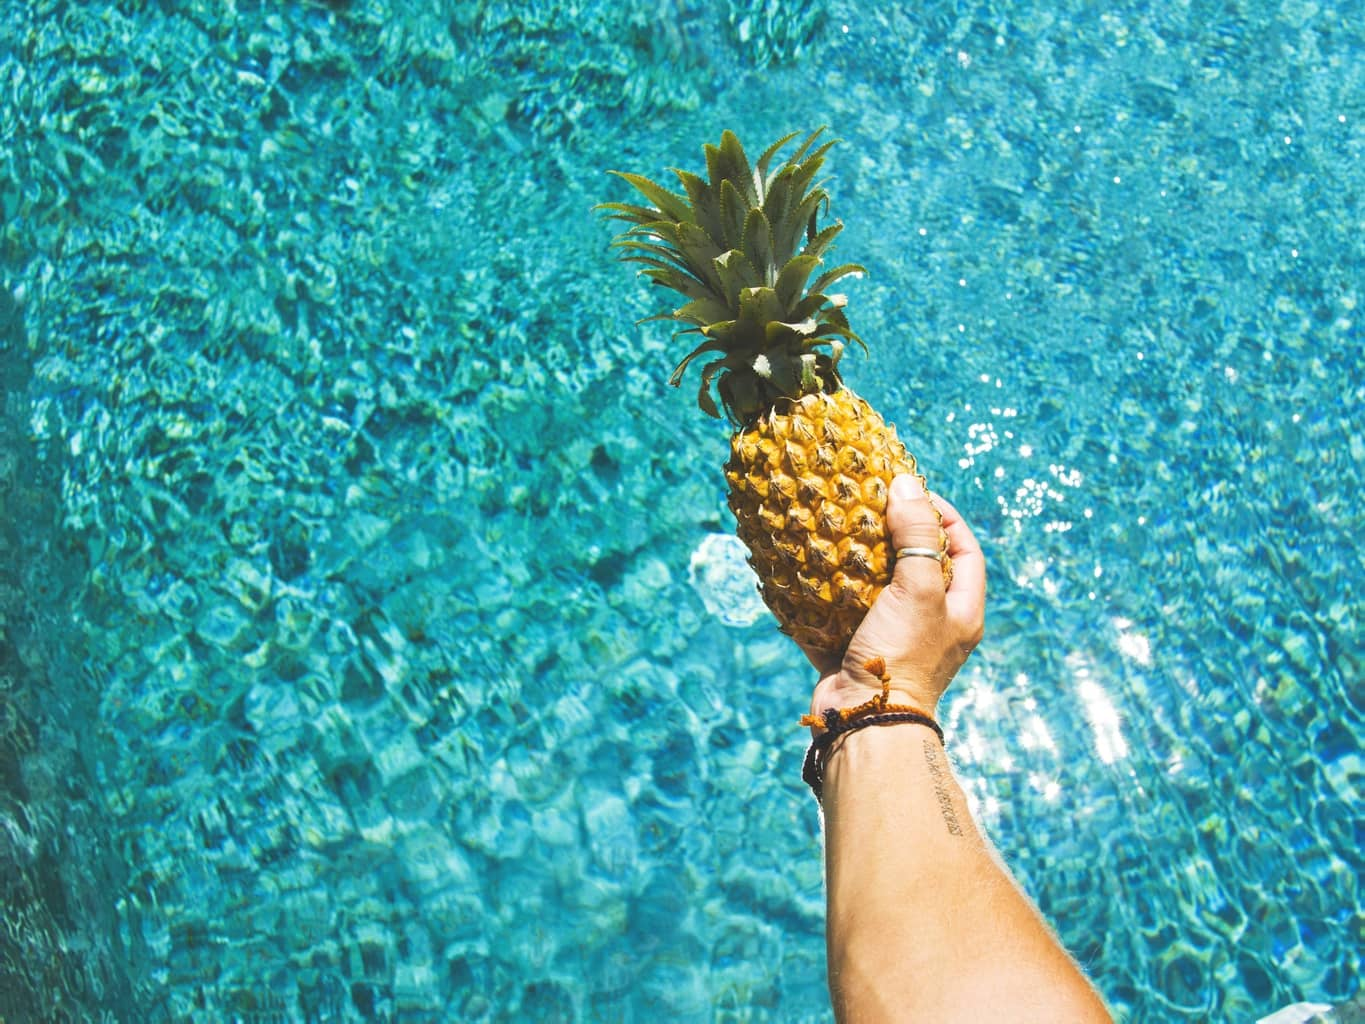 Person holding a pineapple over a pool